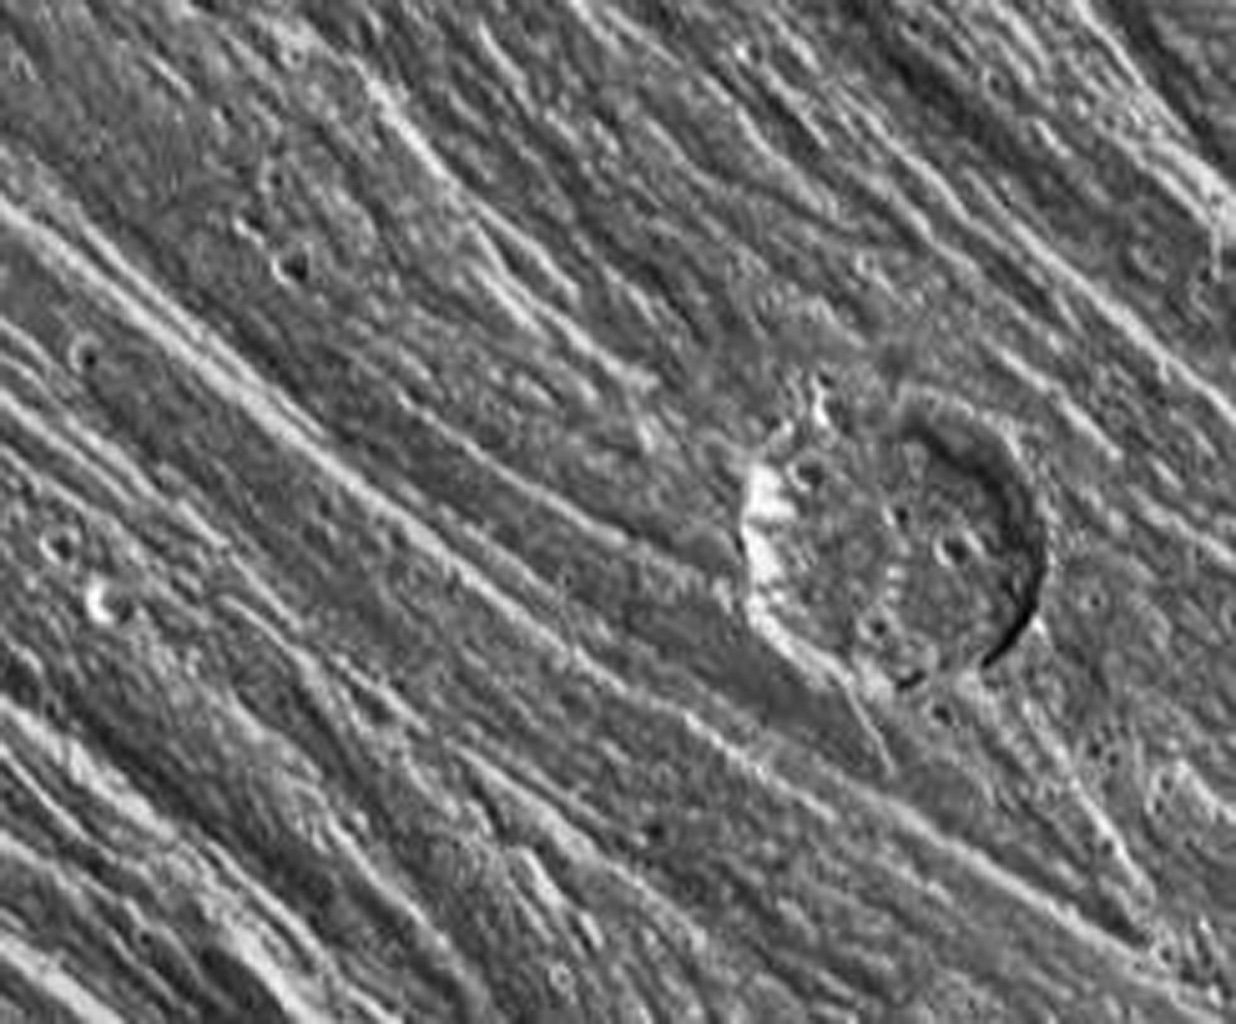 NASA's Galileo spacecraft obtained this image on September 6, 1996 showing grooved terrain in the area of Nippur Sulcus on Jupiter's moon Ganymede.